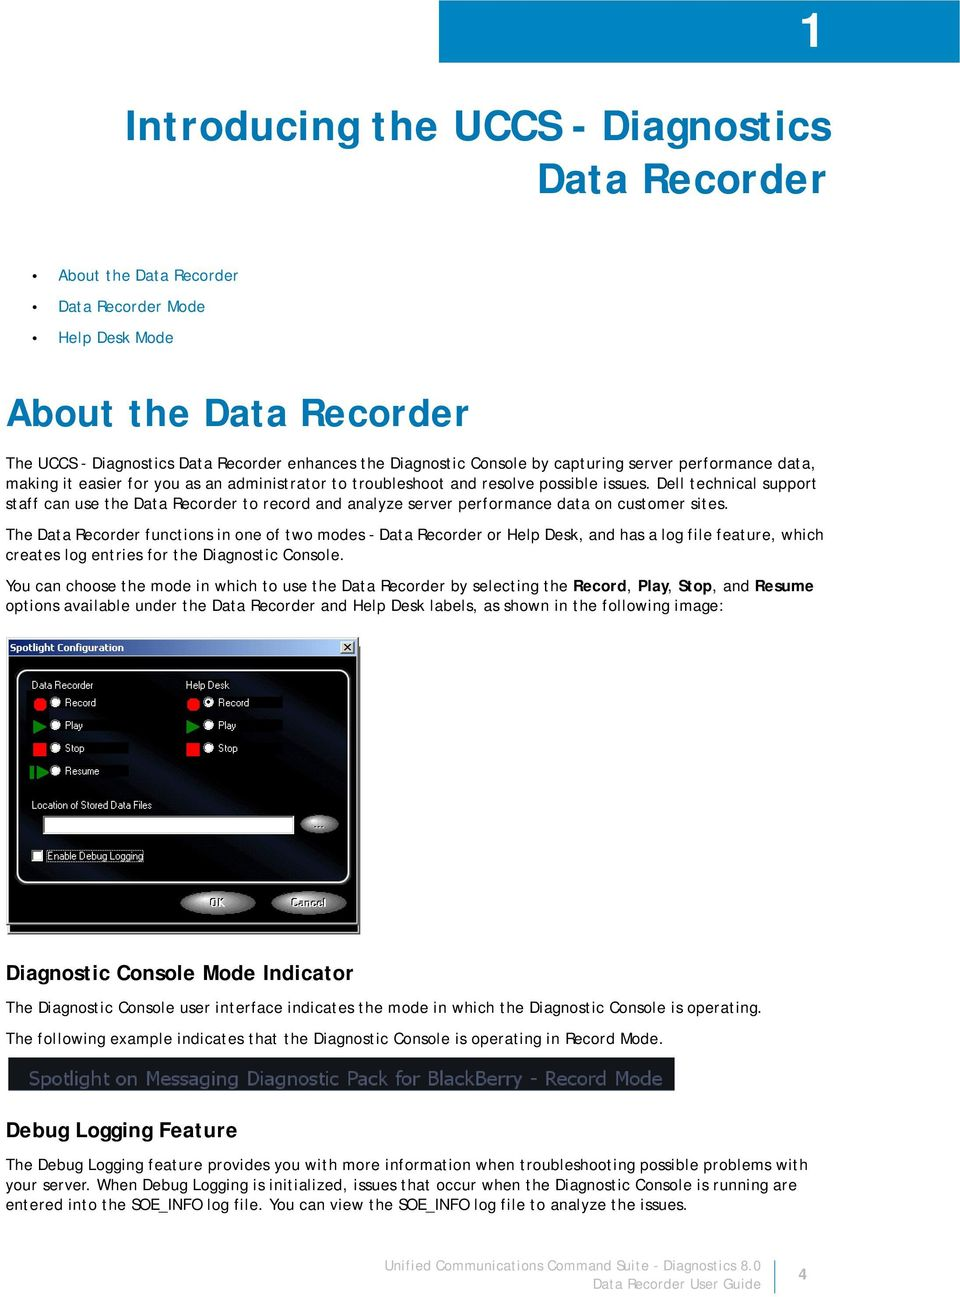 Dell technical support staff can use the Data Recorder to record and analyze server performance data on customer sites.